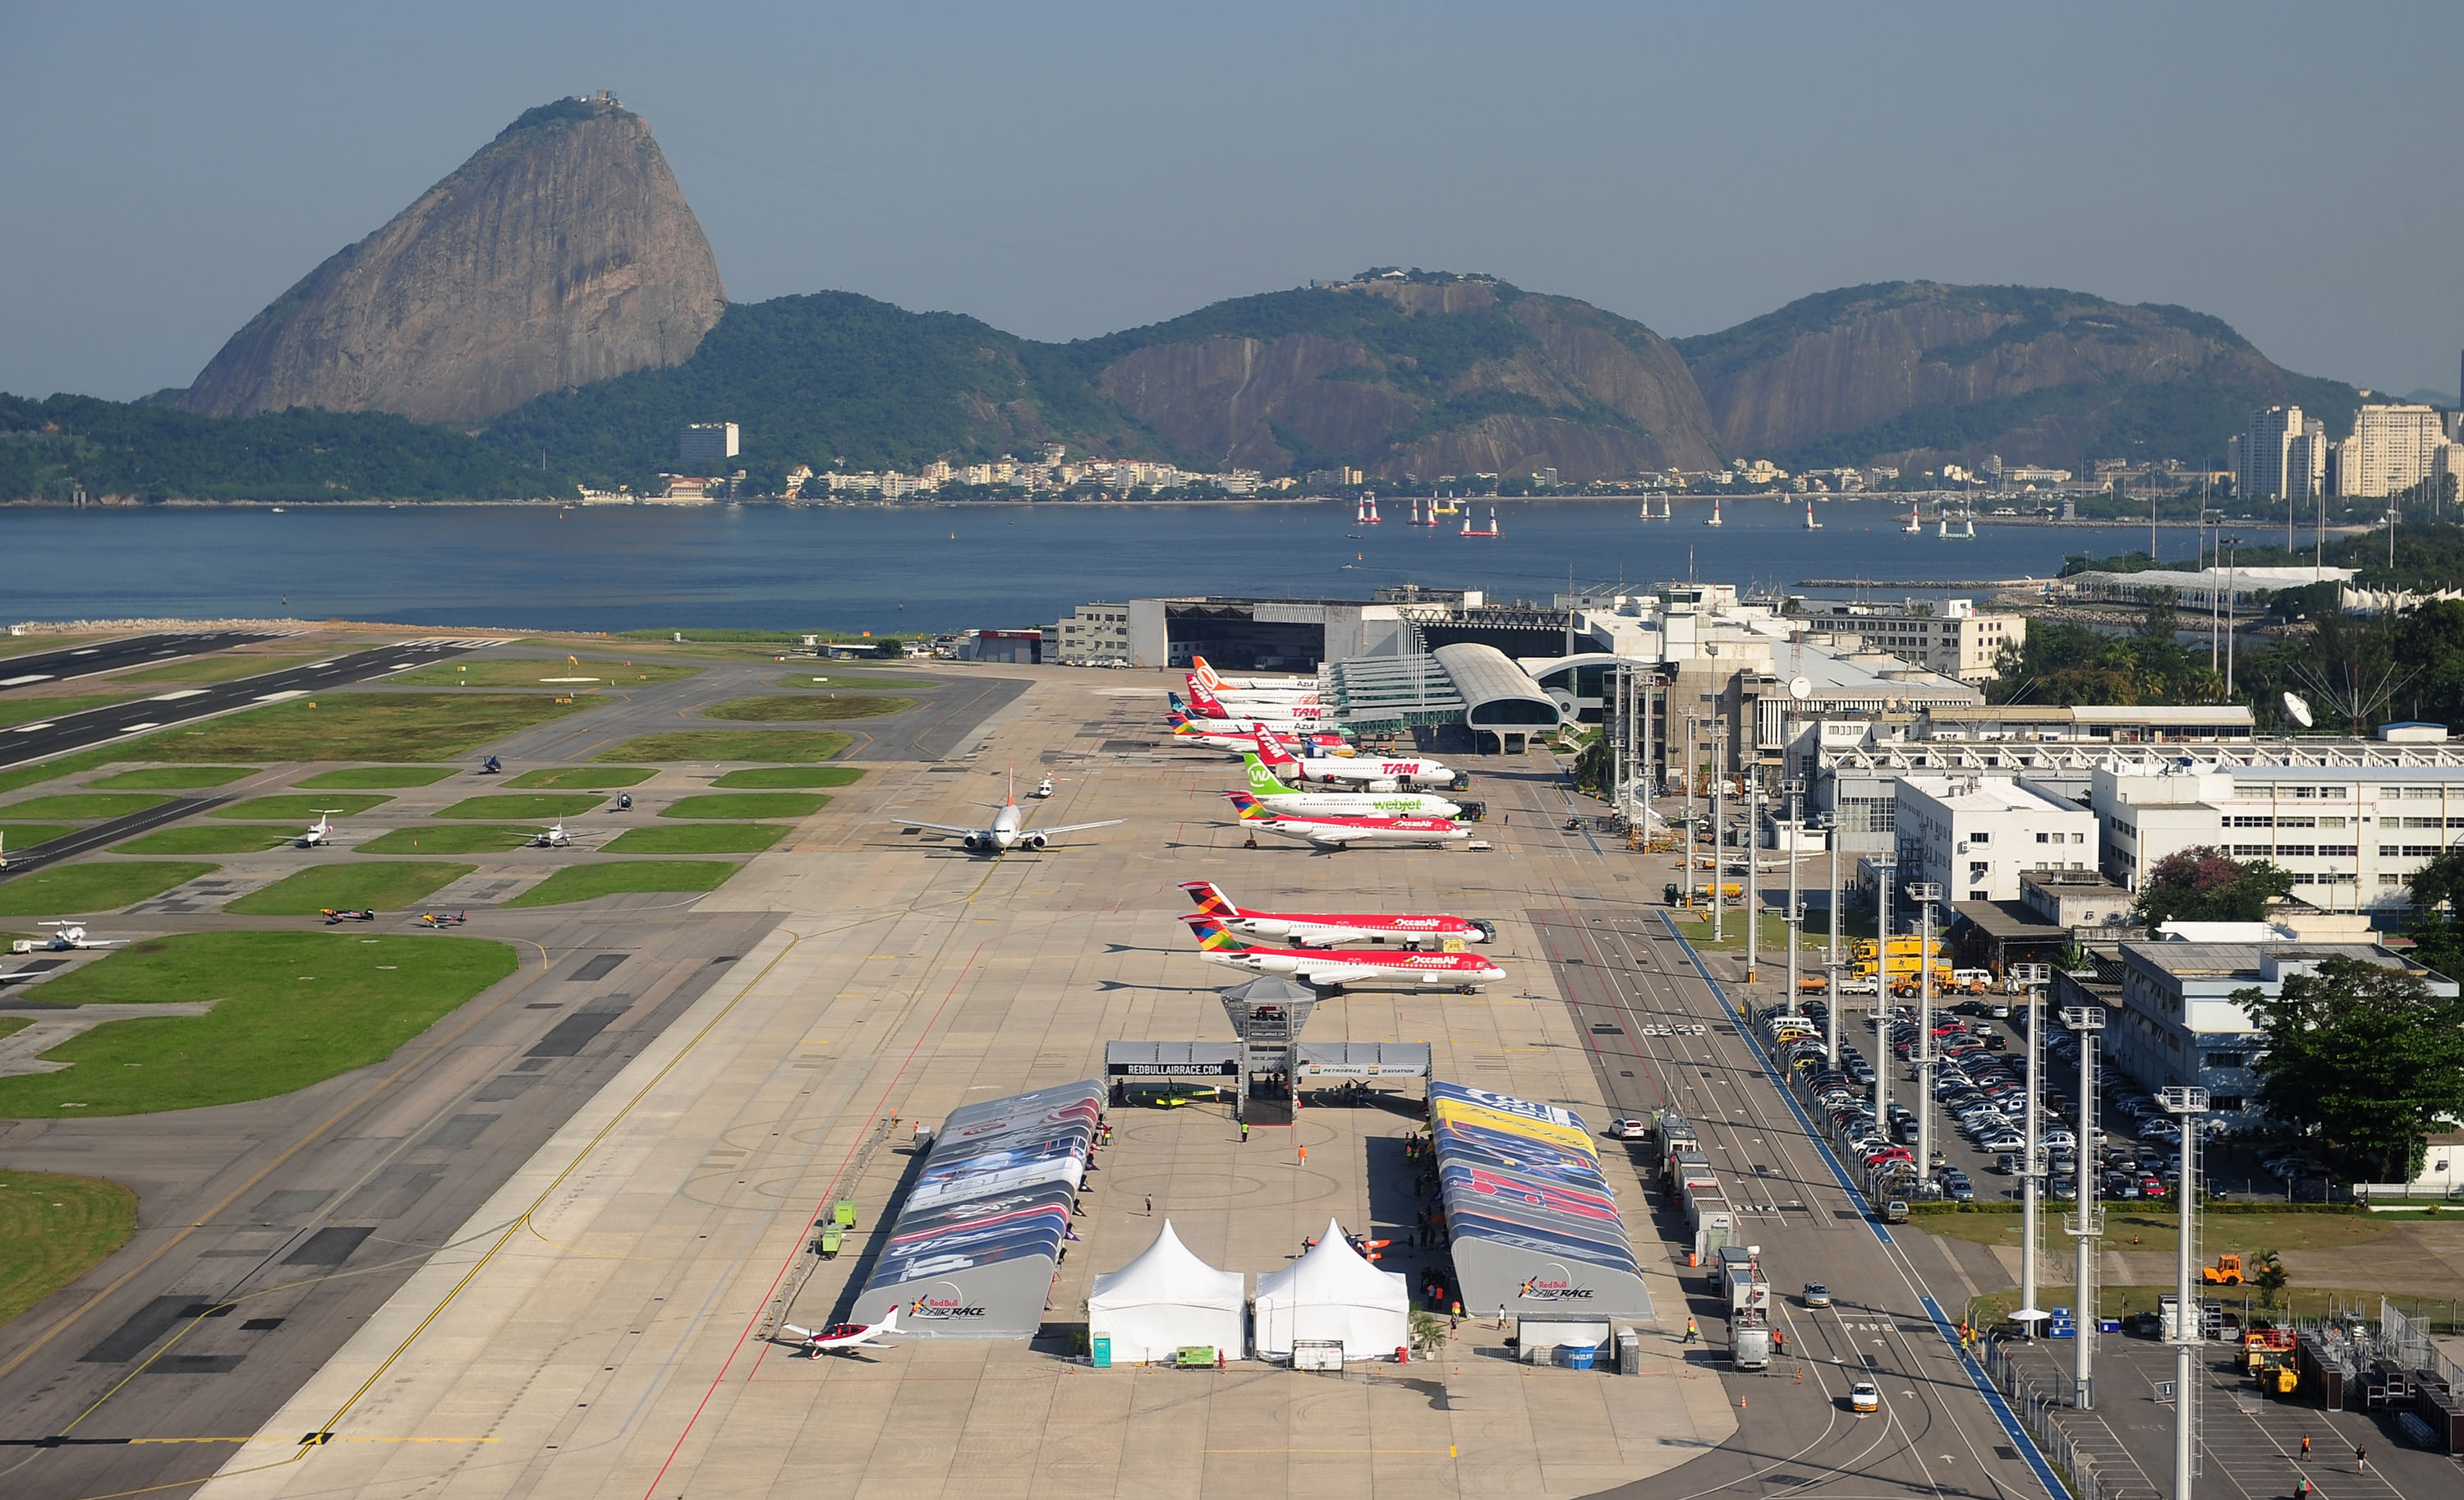 Aeroplans - A general view of the  Santos Dumont Race Airport on May 5, 2010 in Rio de Janeiro, Brazil ©  Mike Hewitt / Getty Images for Red Bull Air Race